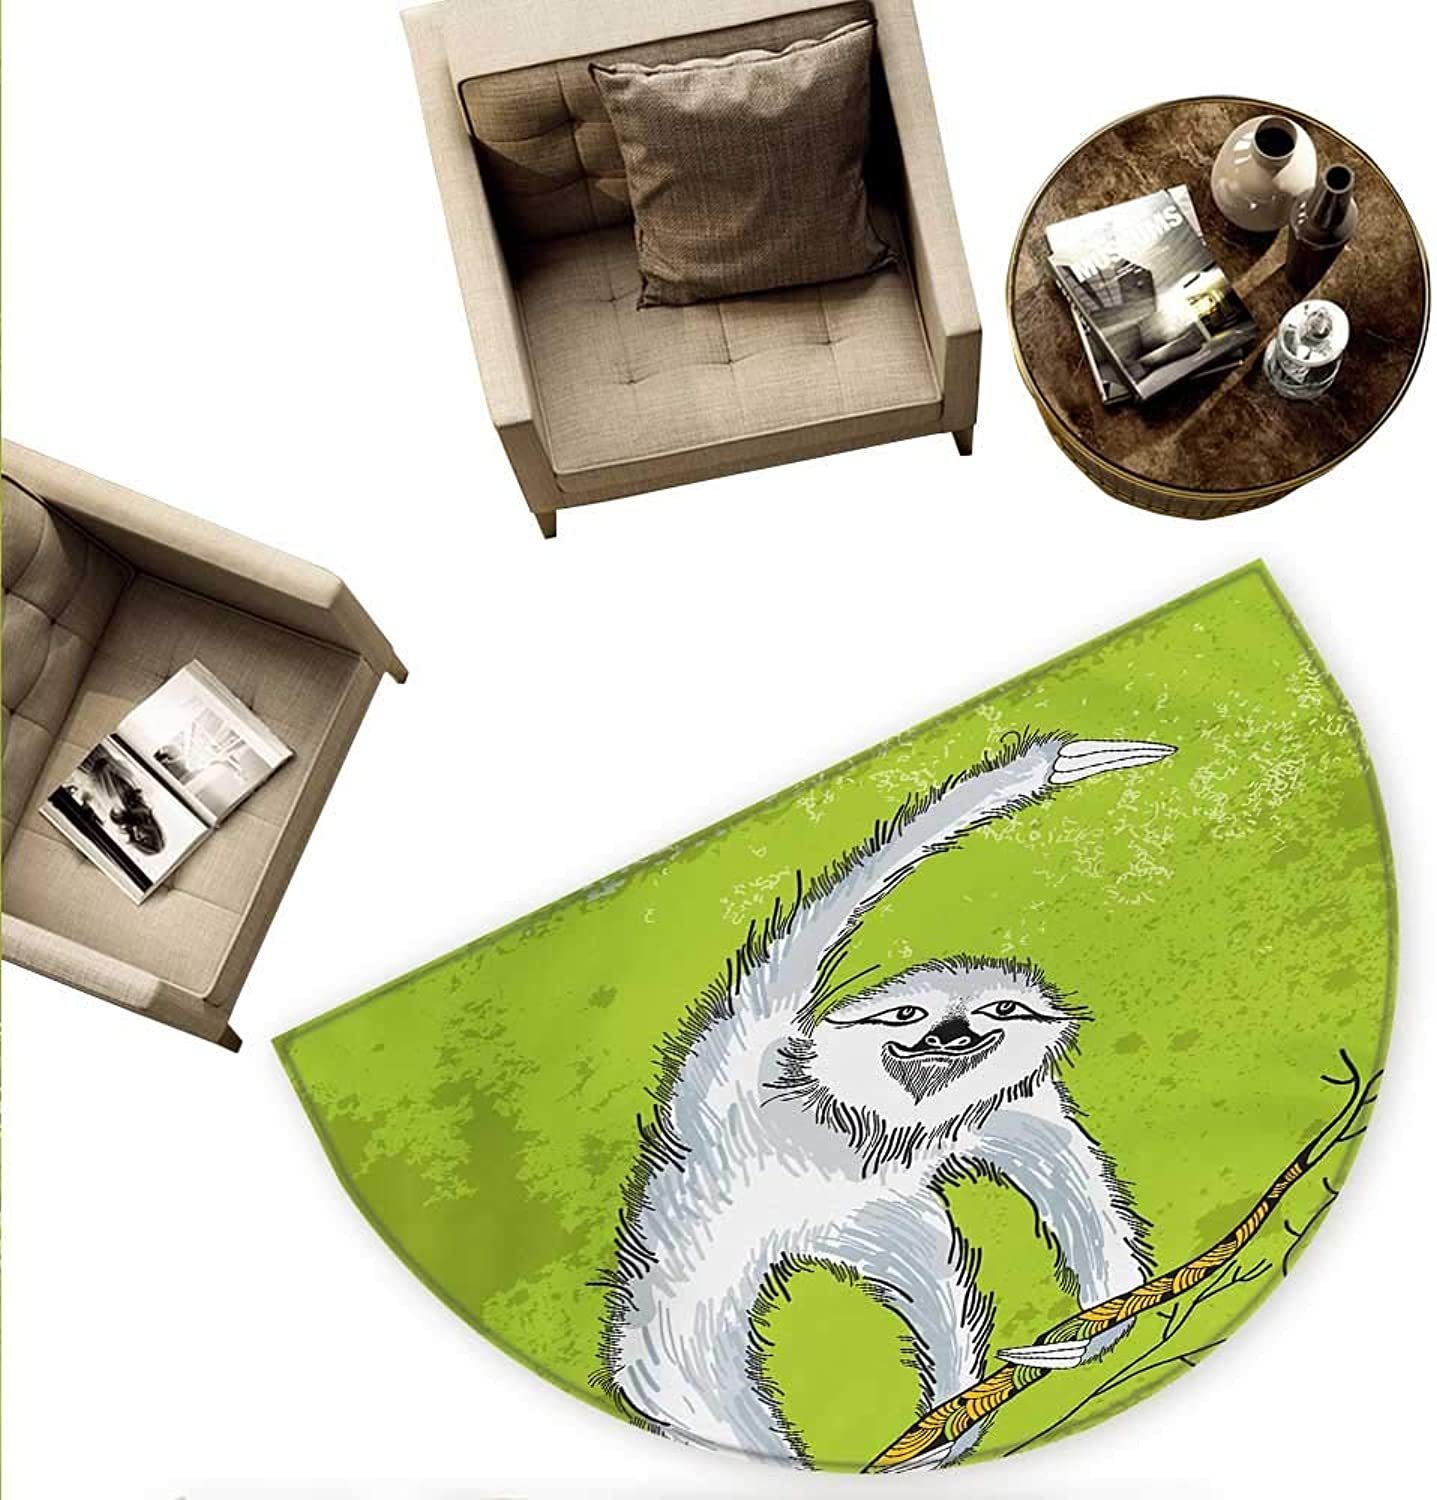 Sloth Semicircular Cushion Smiling Sloth Clutches Hanging on a Branch Habitat Wildlife Entry Door Mat H 78.7  xD 118.1  Pale Grey Green White